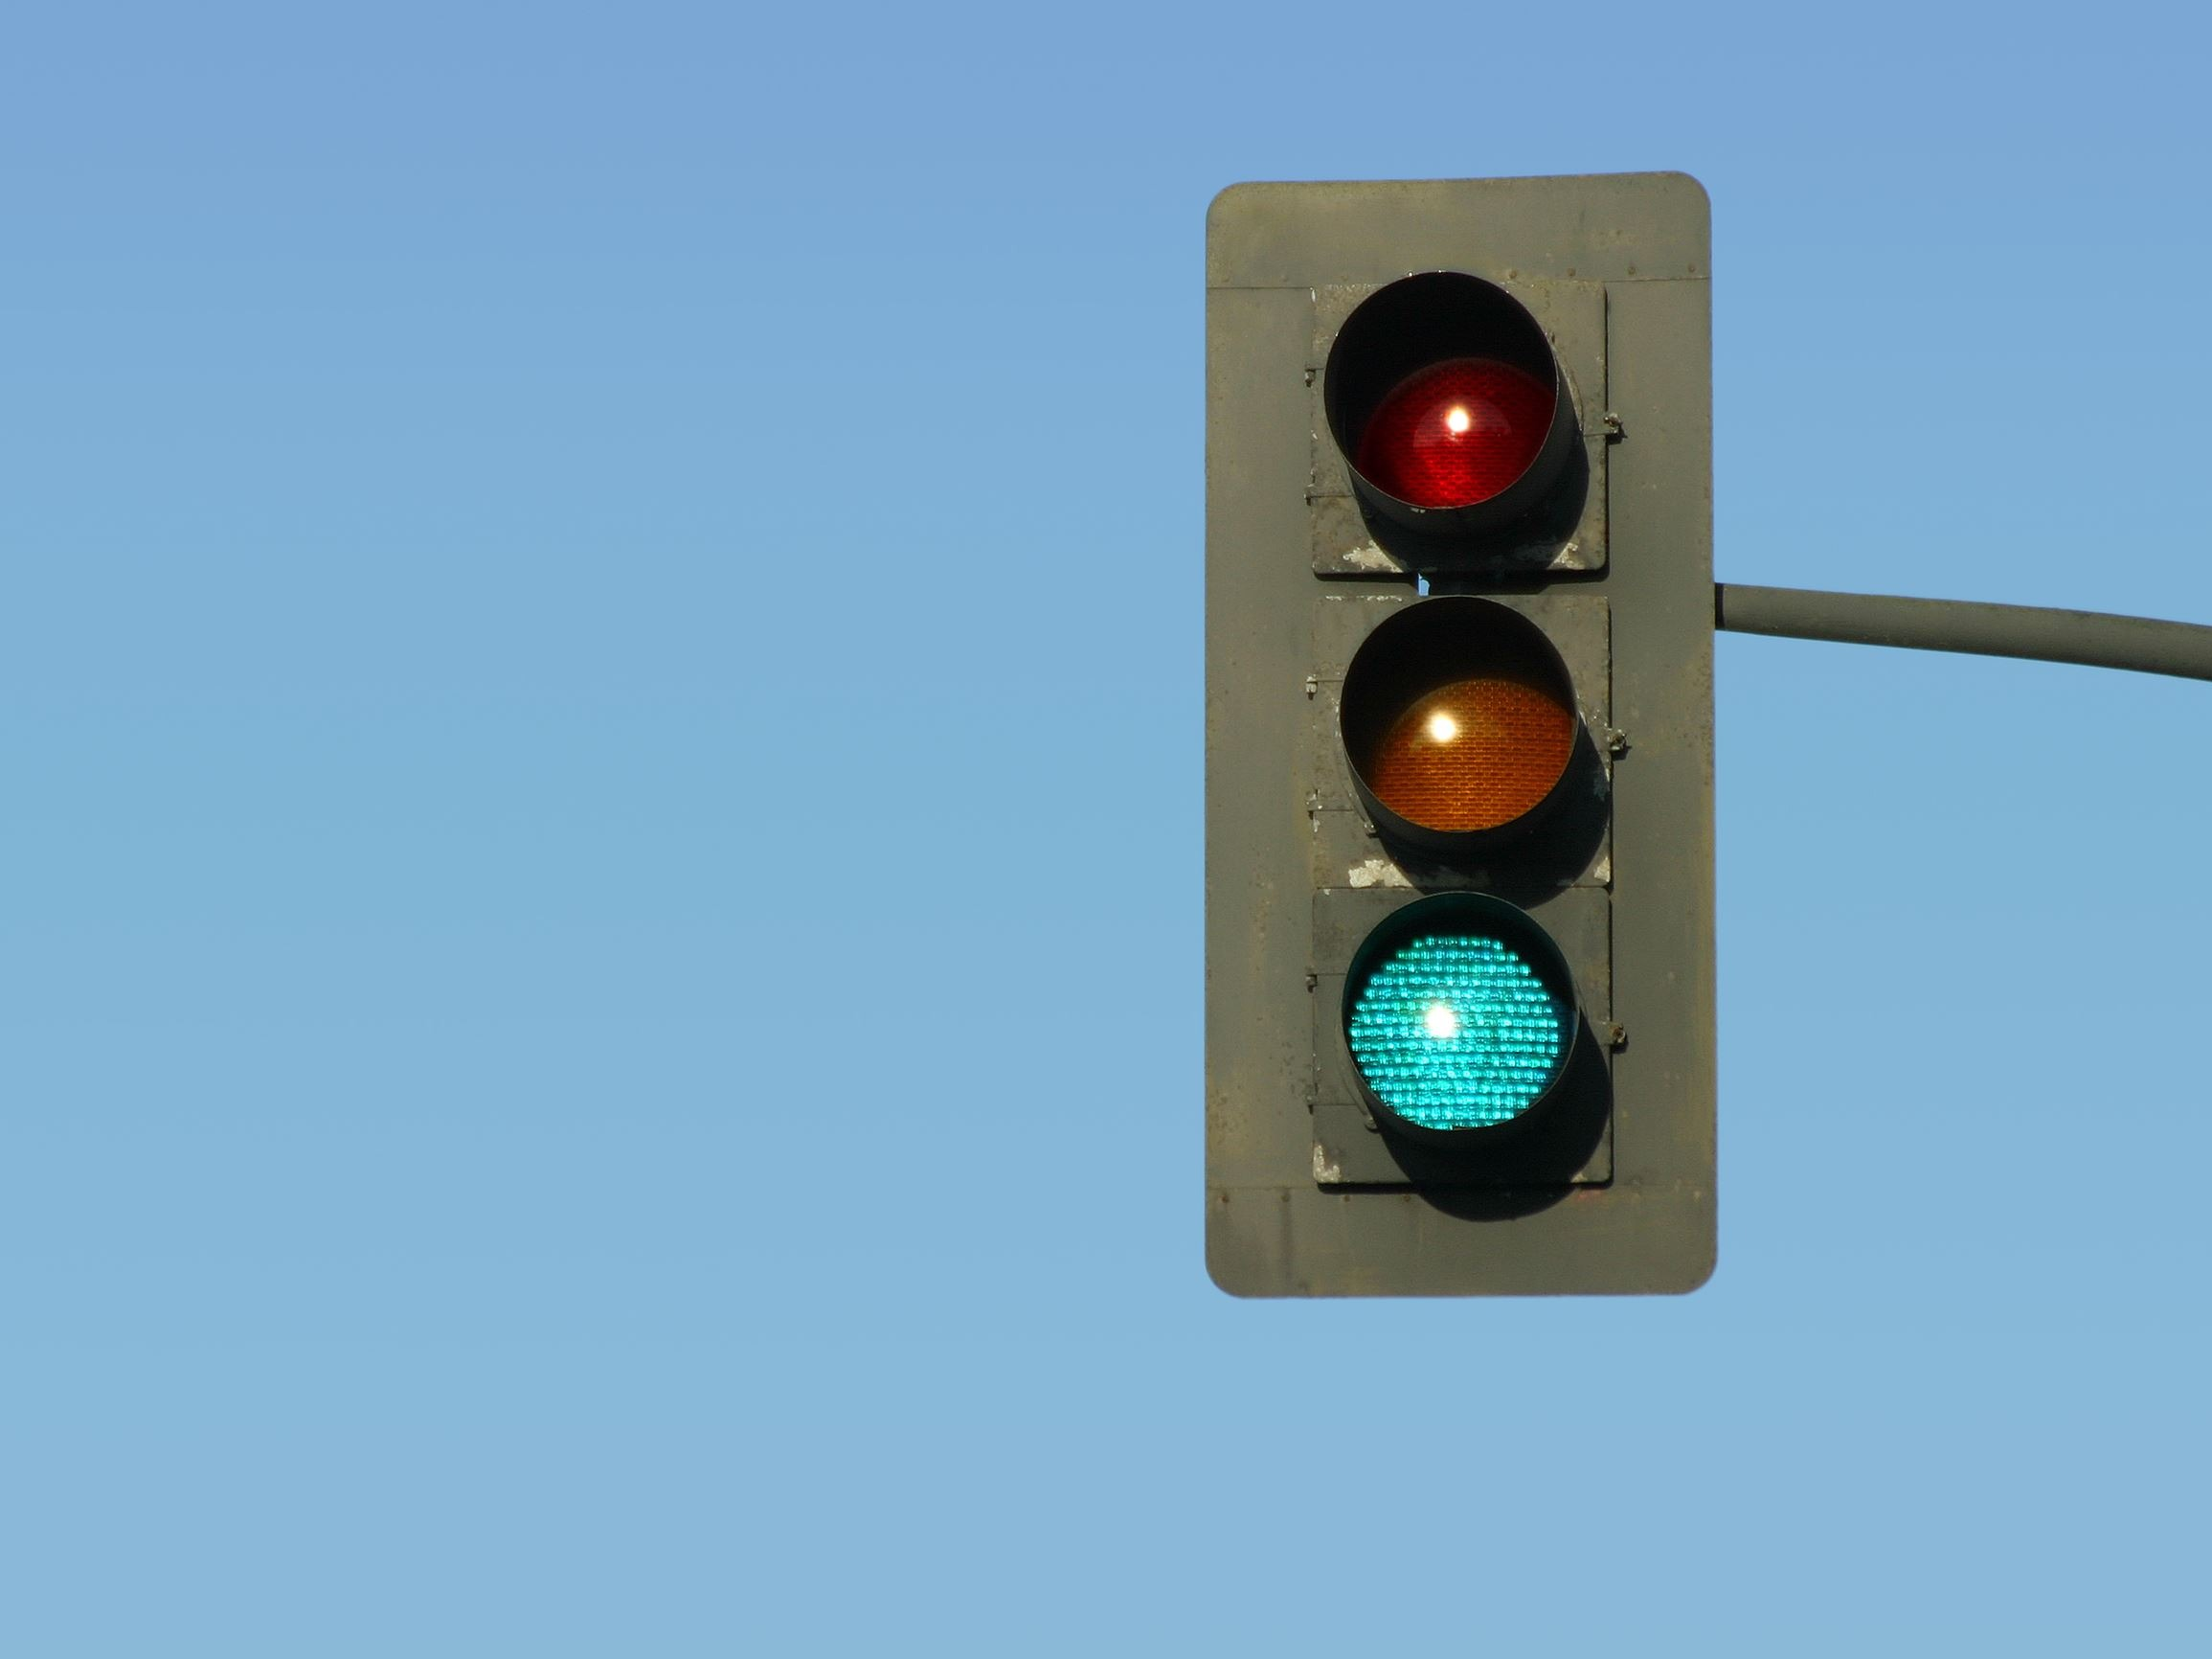 bigstock-Green-Traffic-Light-538991